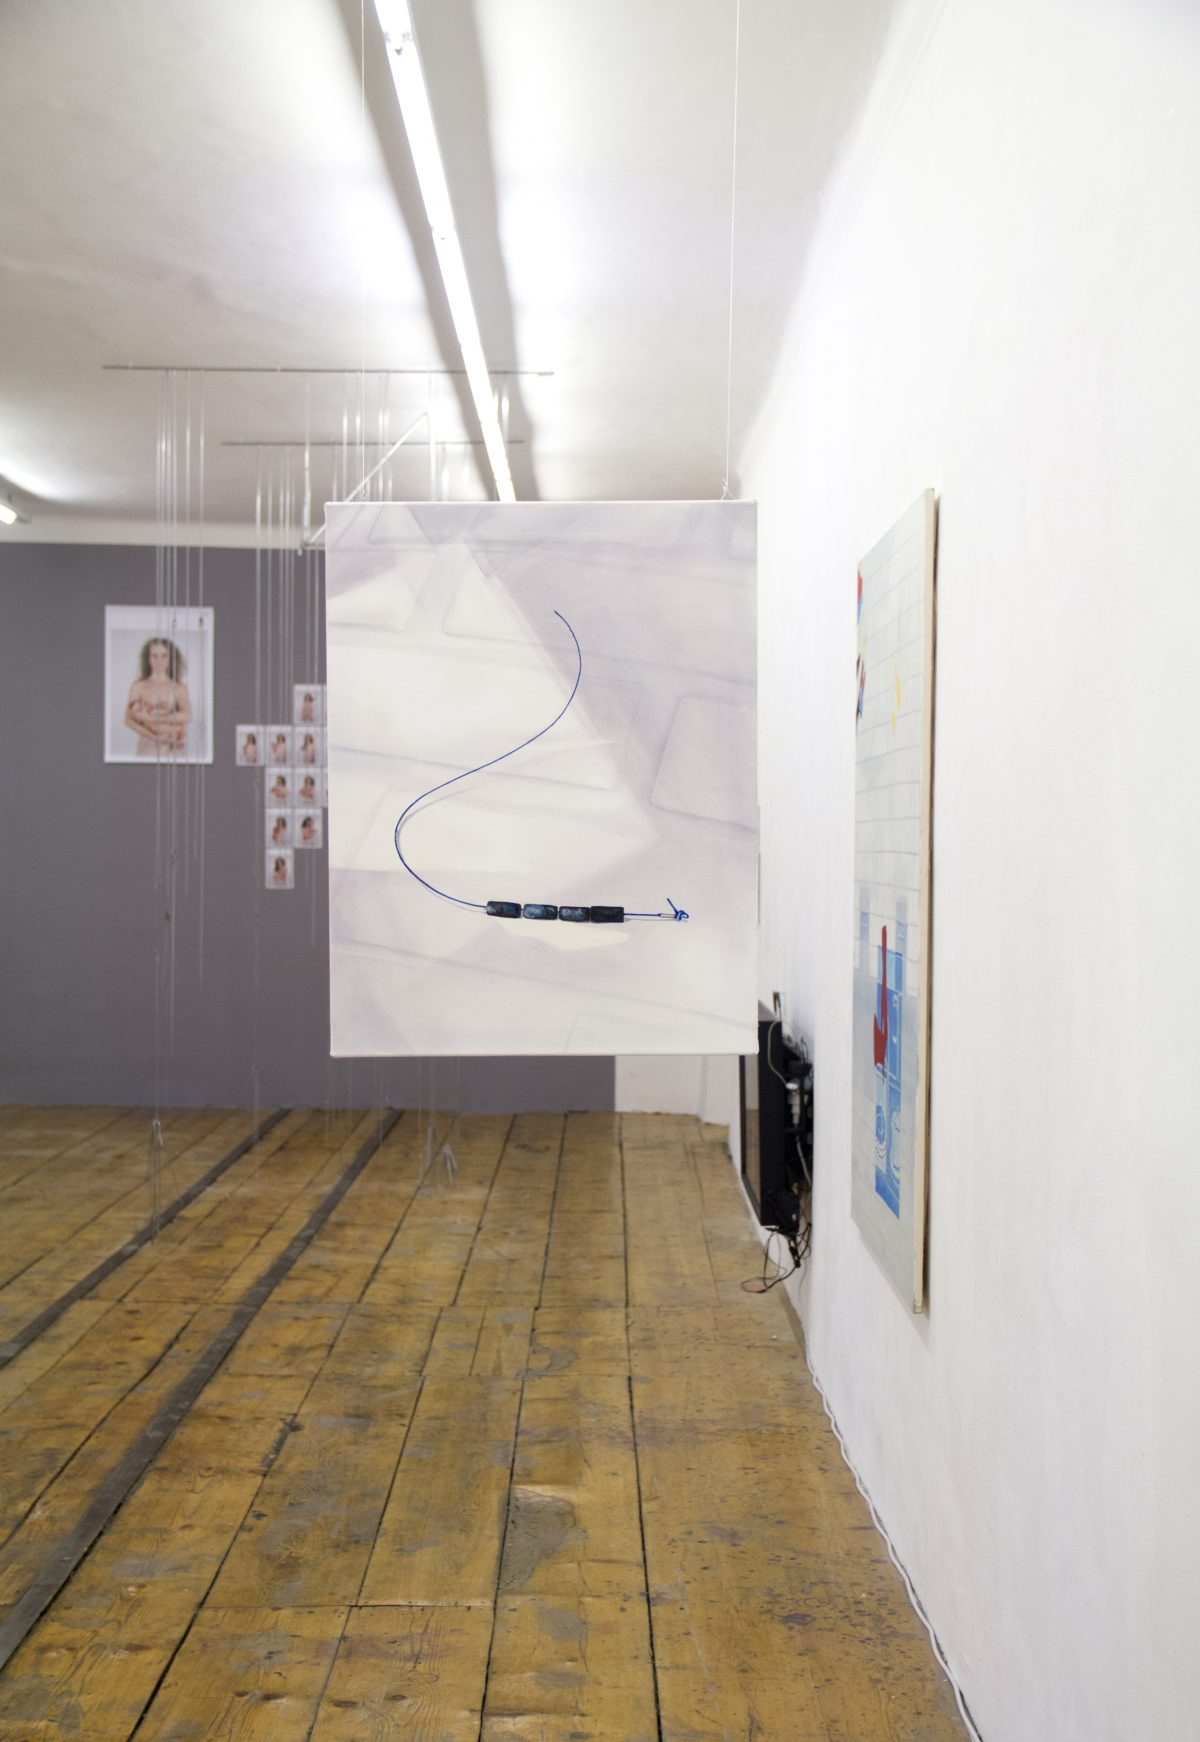 installation-view-intimacy3a